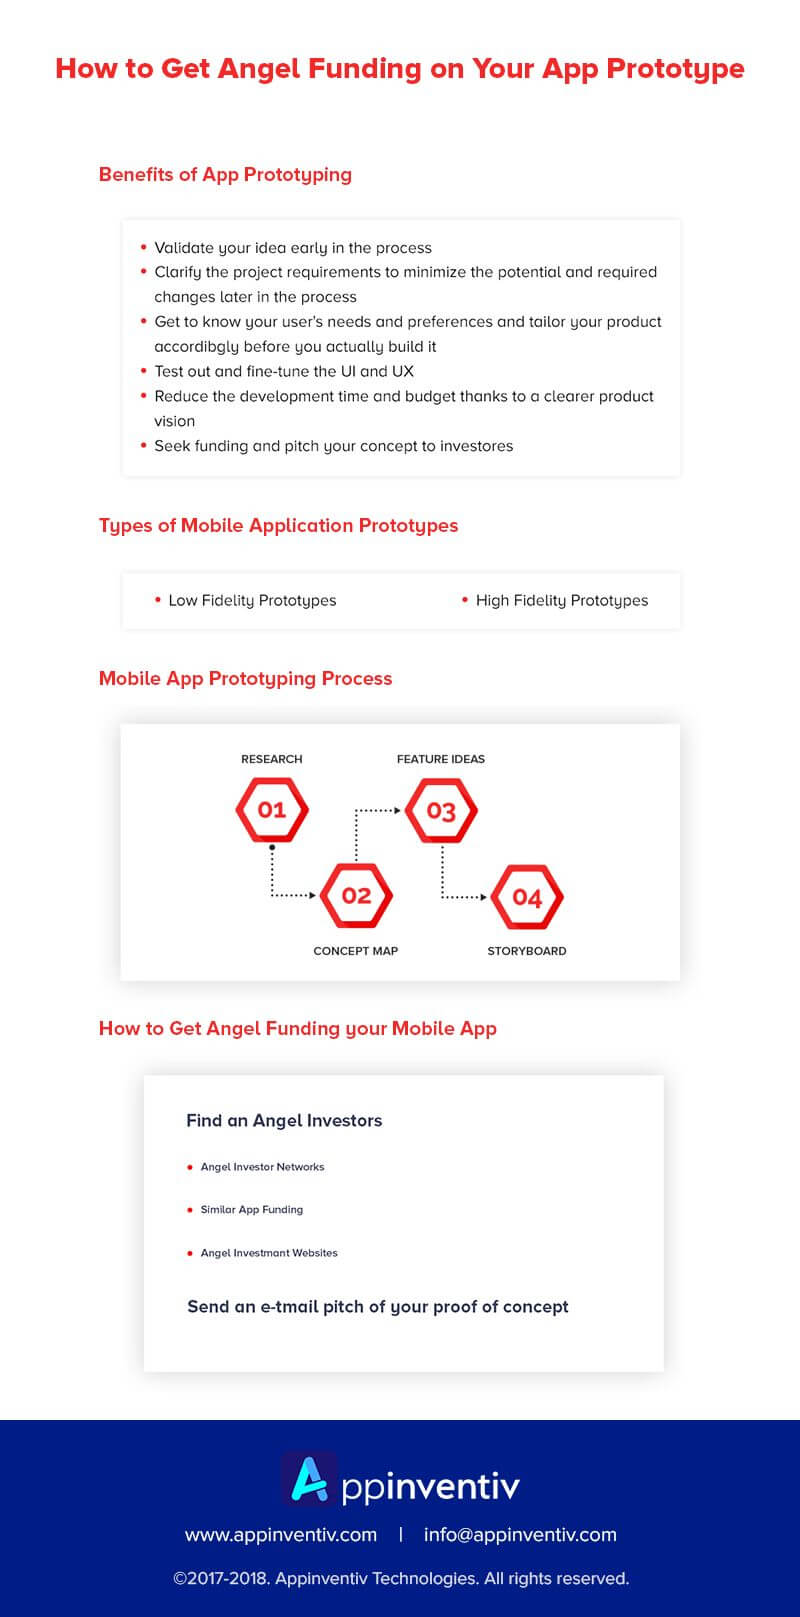 Steps to Get Angel Funding on Your Mobile App Prototype